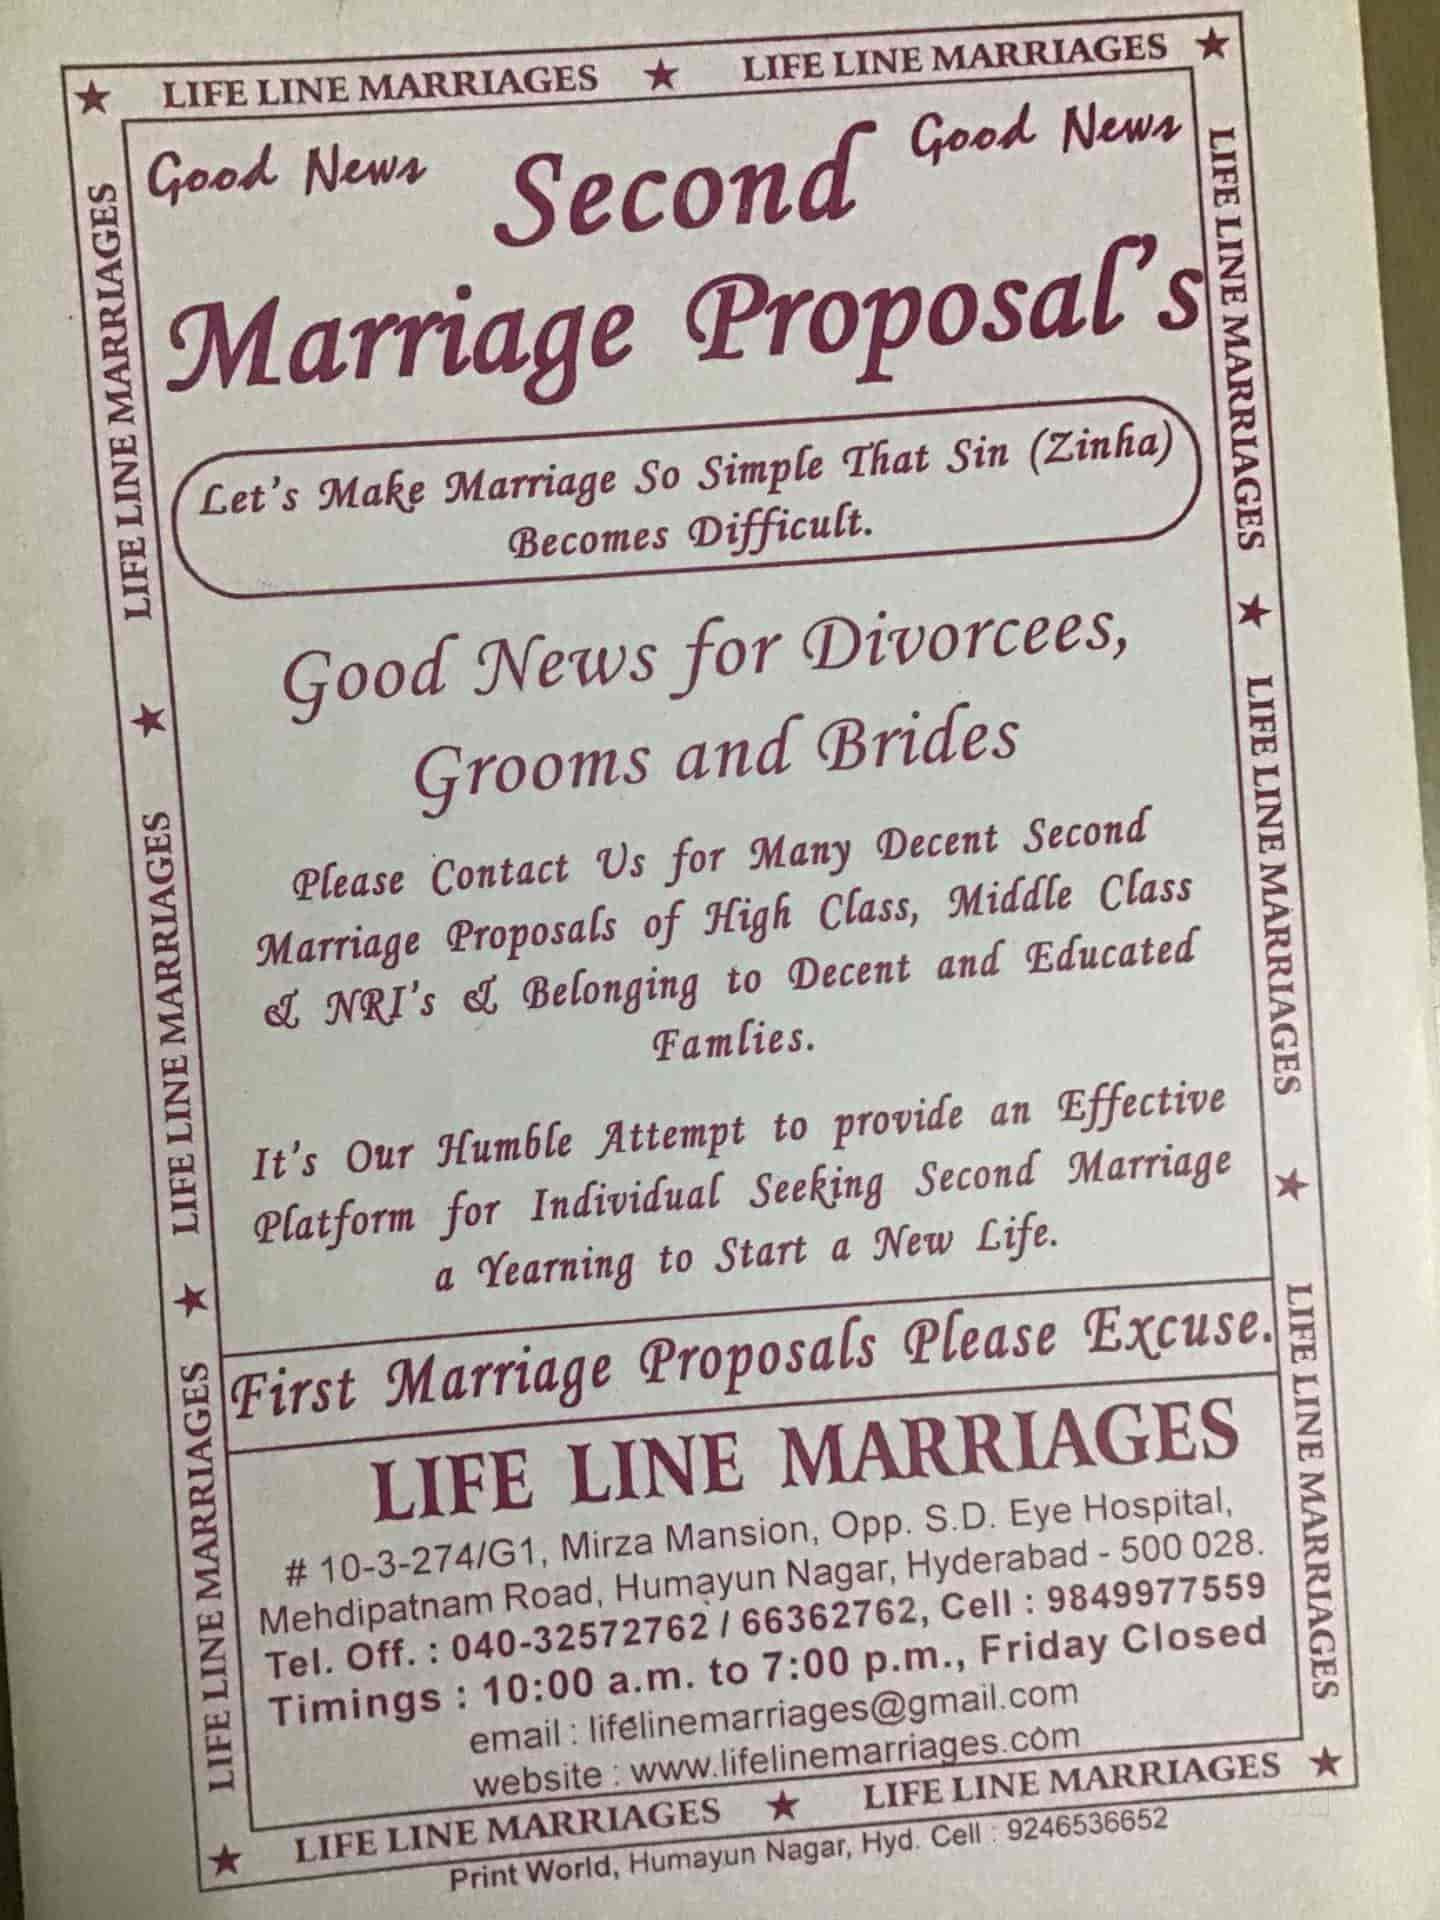 Life Line Marriages, Humayun Nagar - Matrimonial Bureaus in